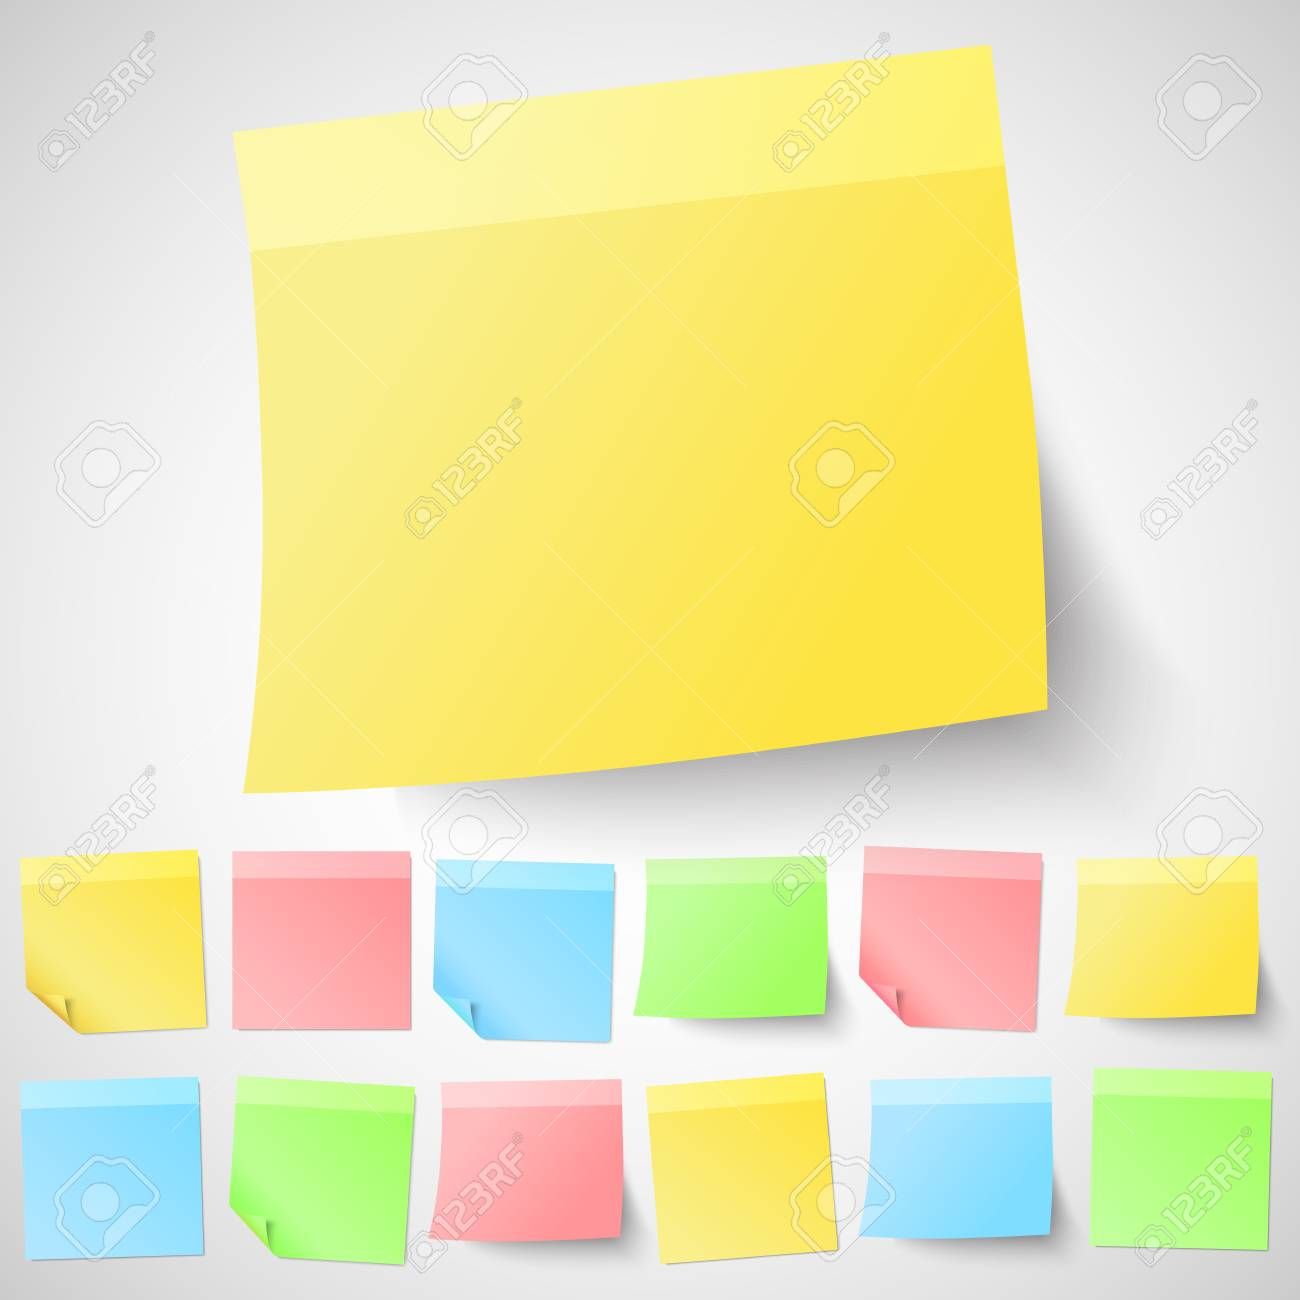 set of isolated adhesive sticky notes different shapes and colors